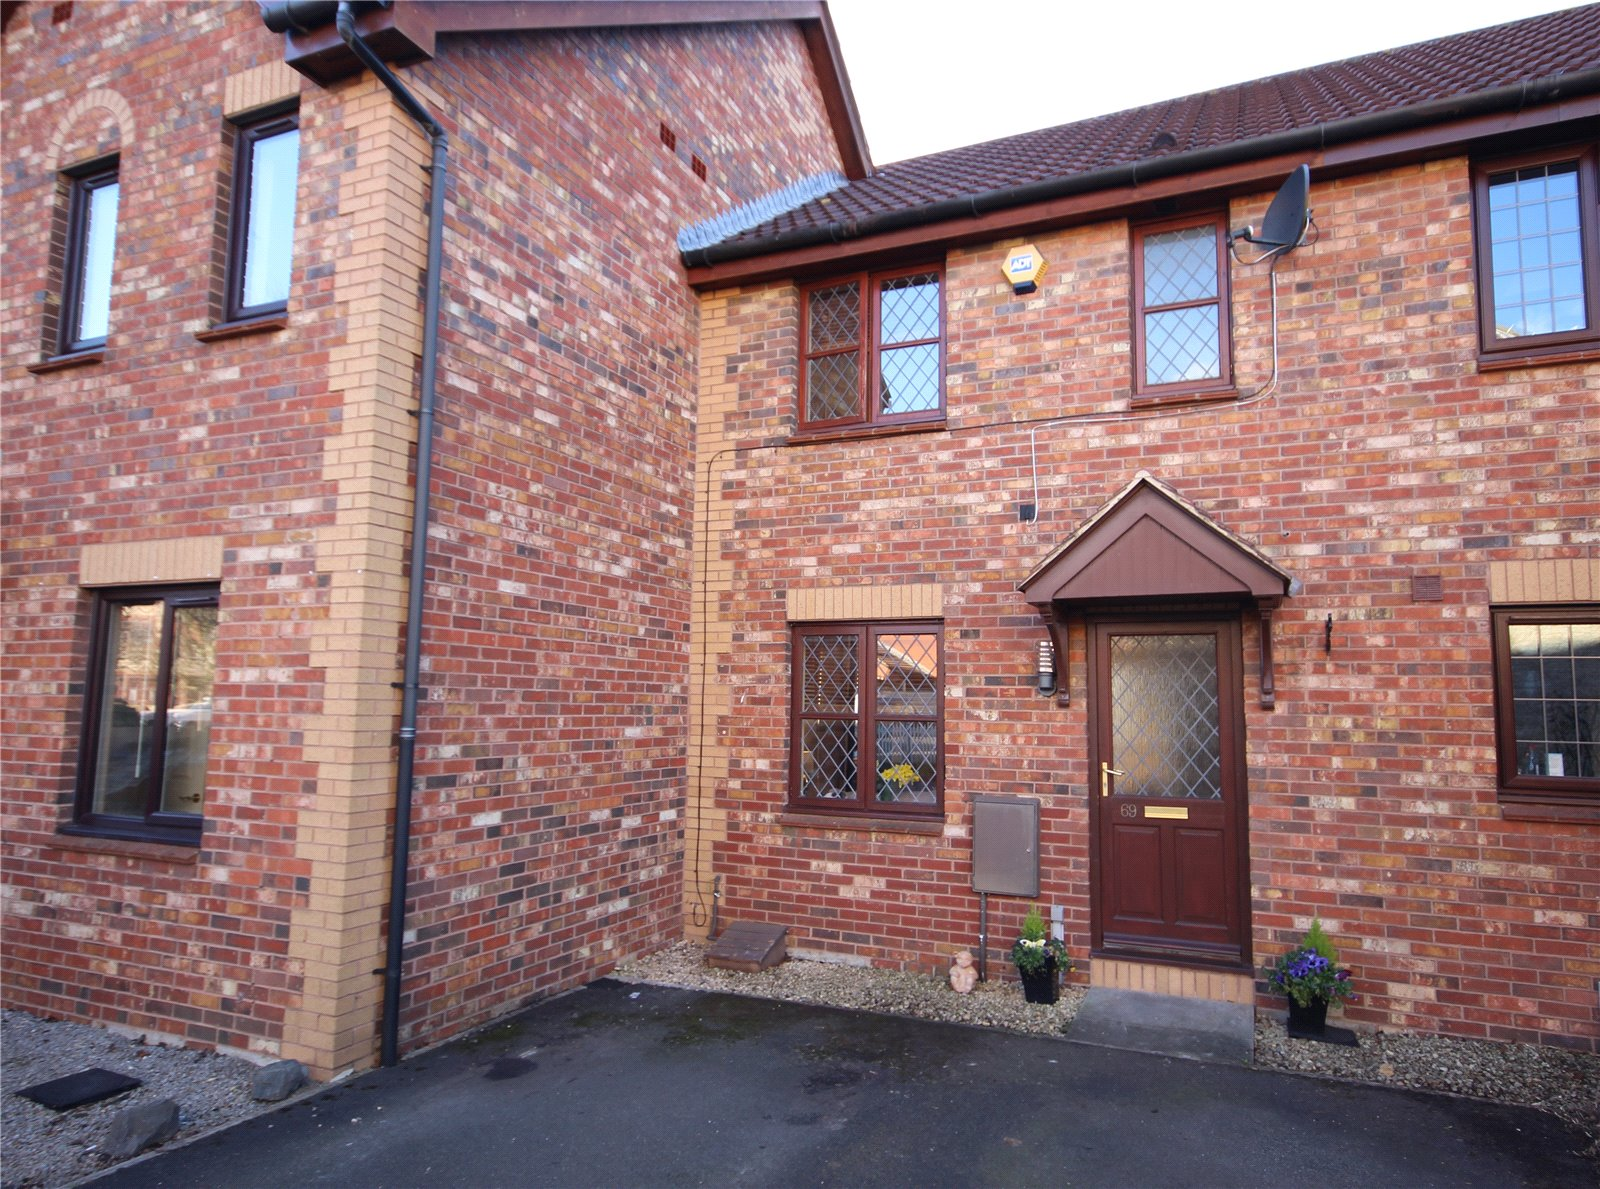 Cj hole bradley stoke 2 bedroom house for sale in juniper for Juniper house